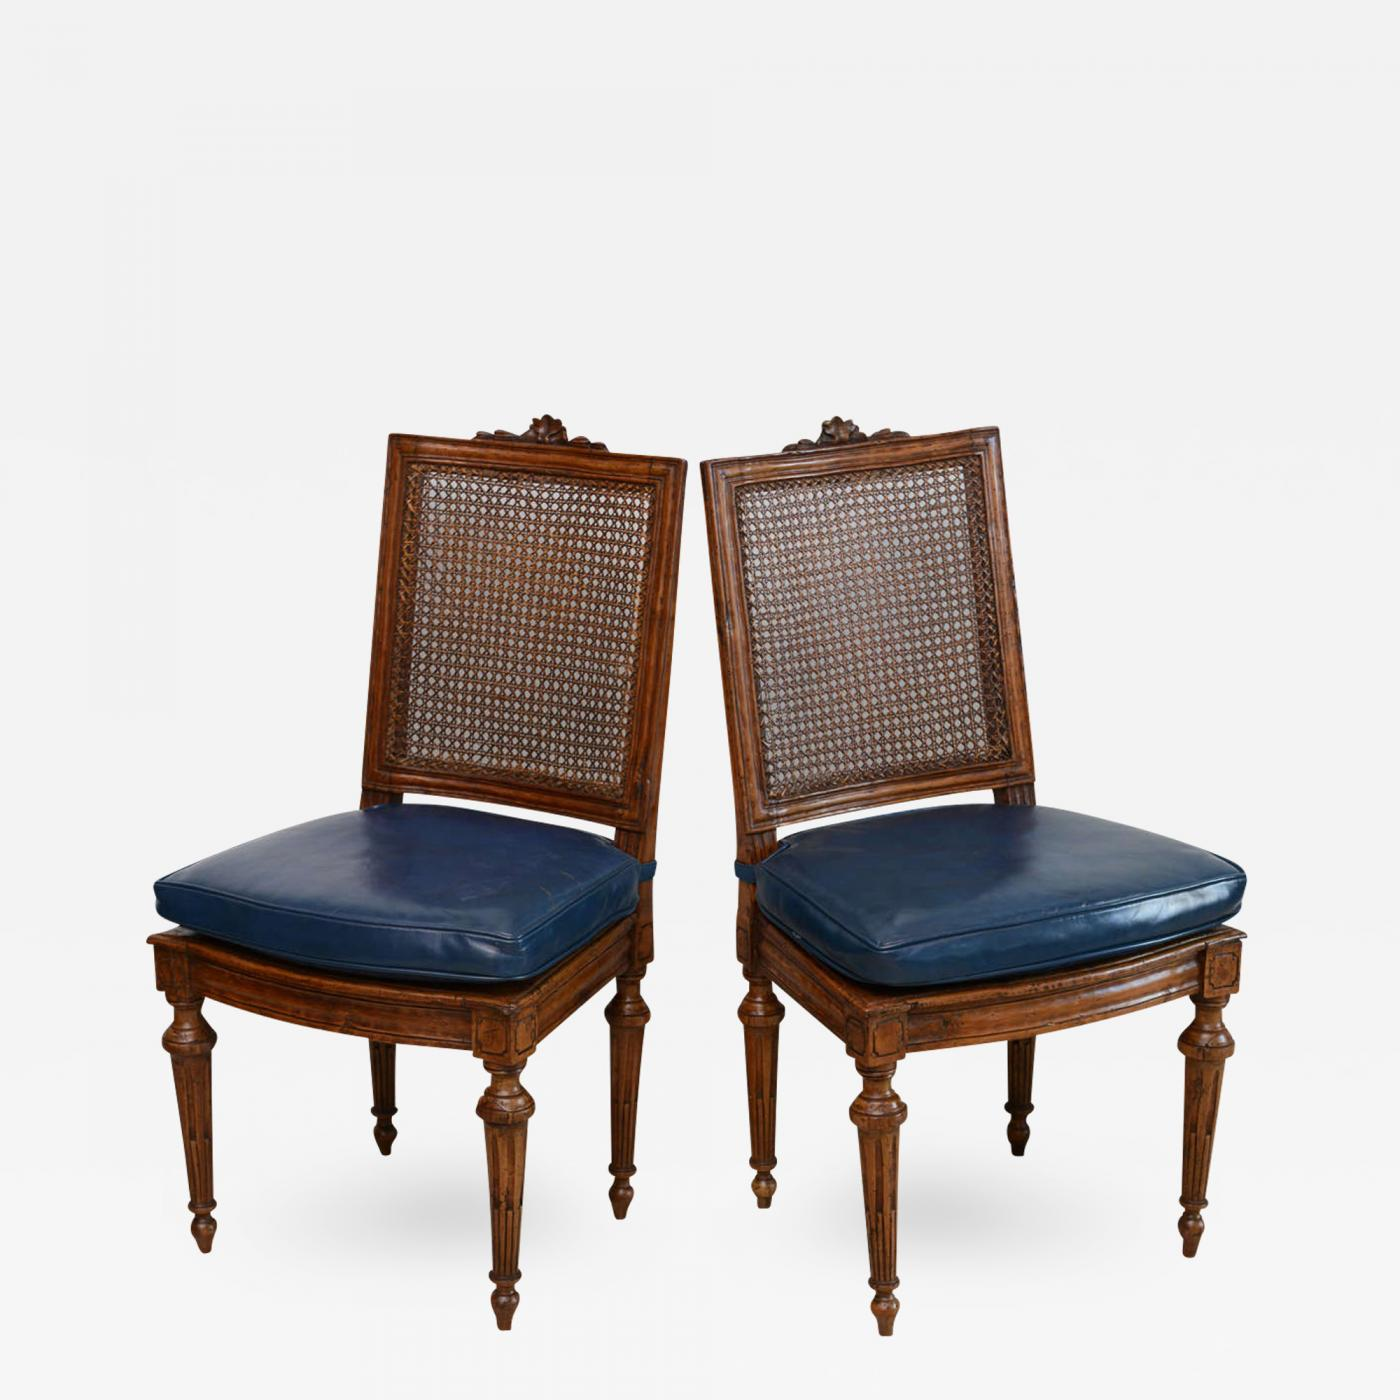 Outstanding Set Of Eight Louis Xvi Beechwood Dining Chairs Late 18Th Century Pabps2019 Chair Design Images Pabps2019Com